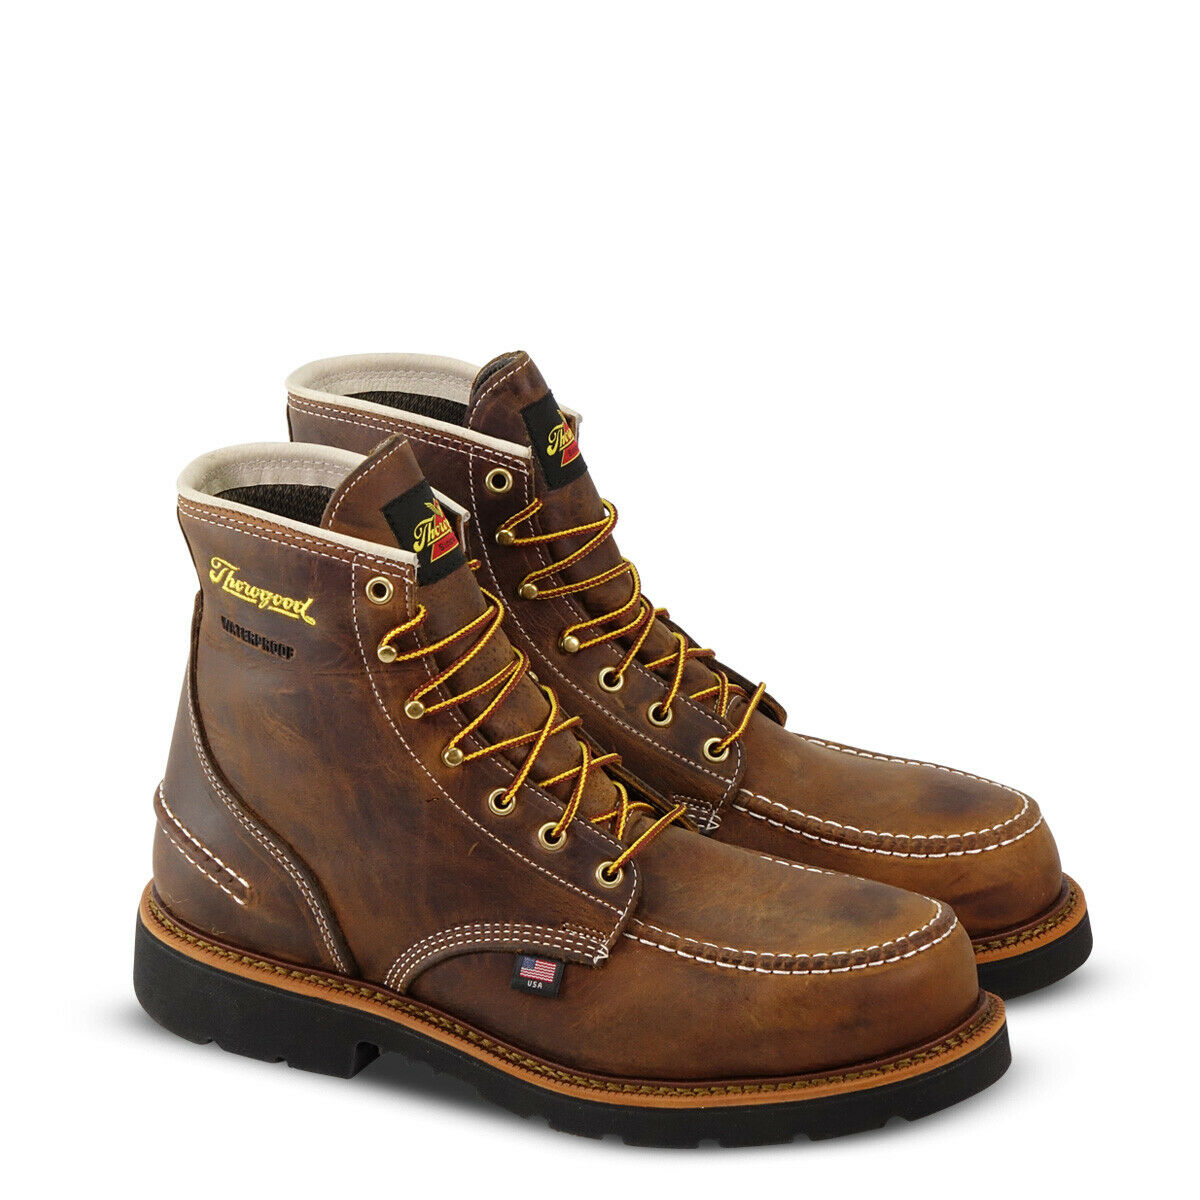 Thgoldgood Boots 804-3696 6  Waterproof Steel Toe Made In USA Safety 1957 Moc Toe